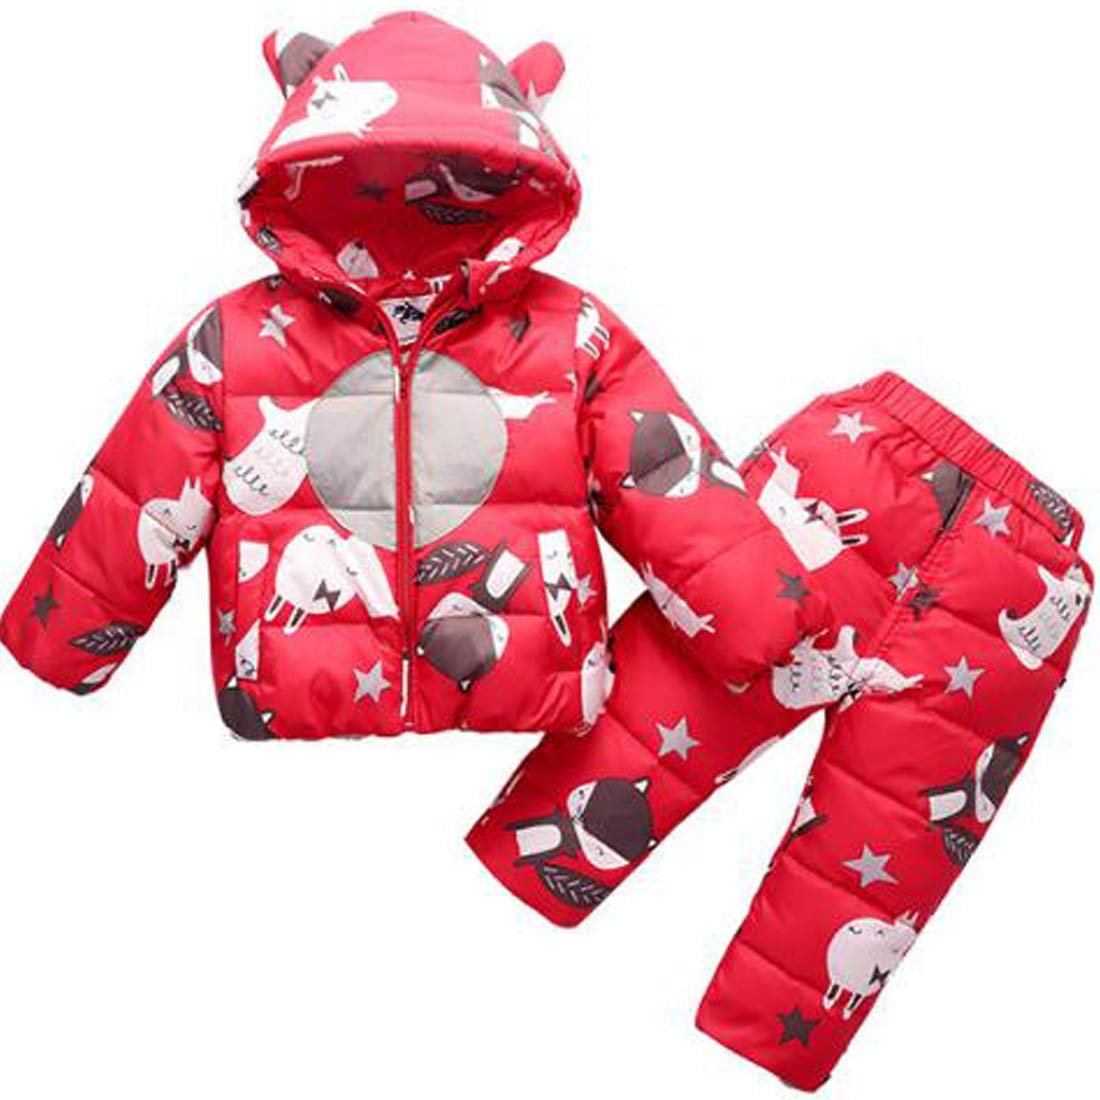 Maxhugoo Baby Little Girls Boy Cartoon Print Down Jacket Two Piece Hooded Snowsuit